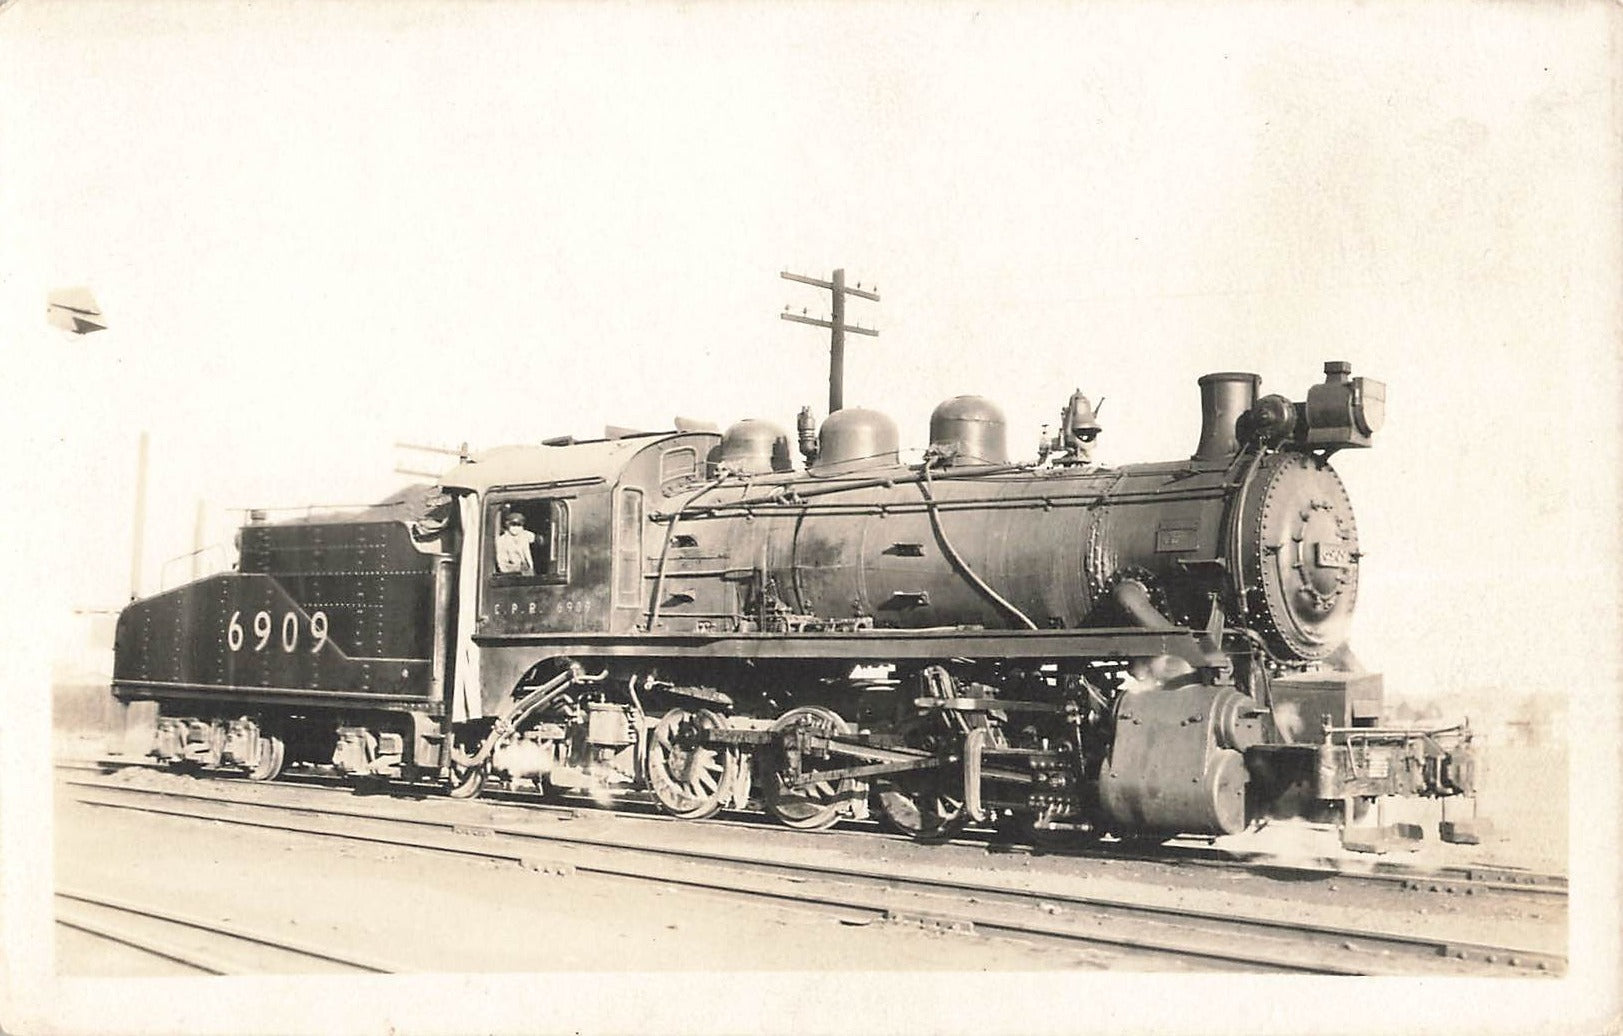 Canadian Pacific Railway Locomotive Engine 6909. RPPC Postcard